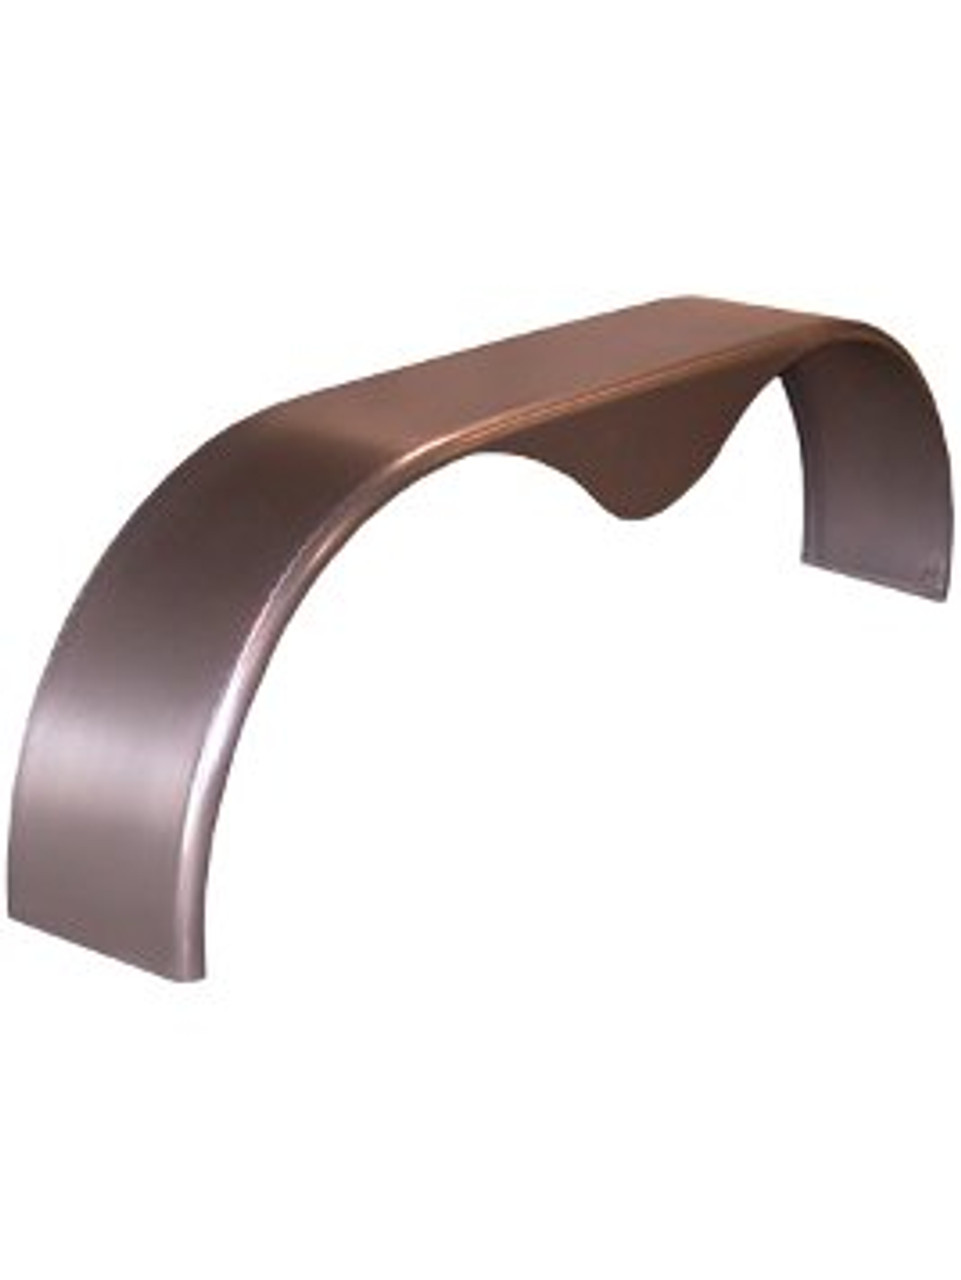 TTD966 --- Tear Drop Tandem Fender - 16 gauge Steel